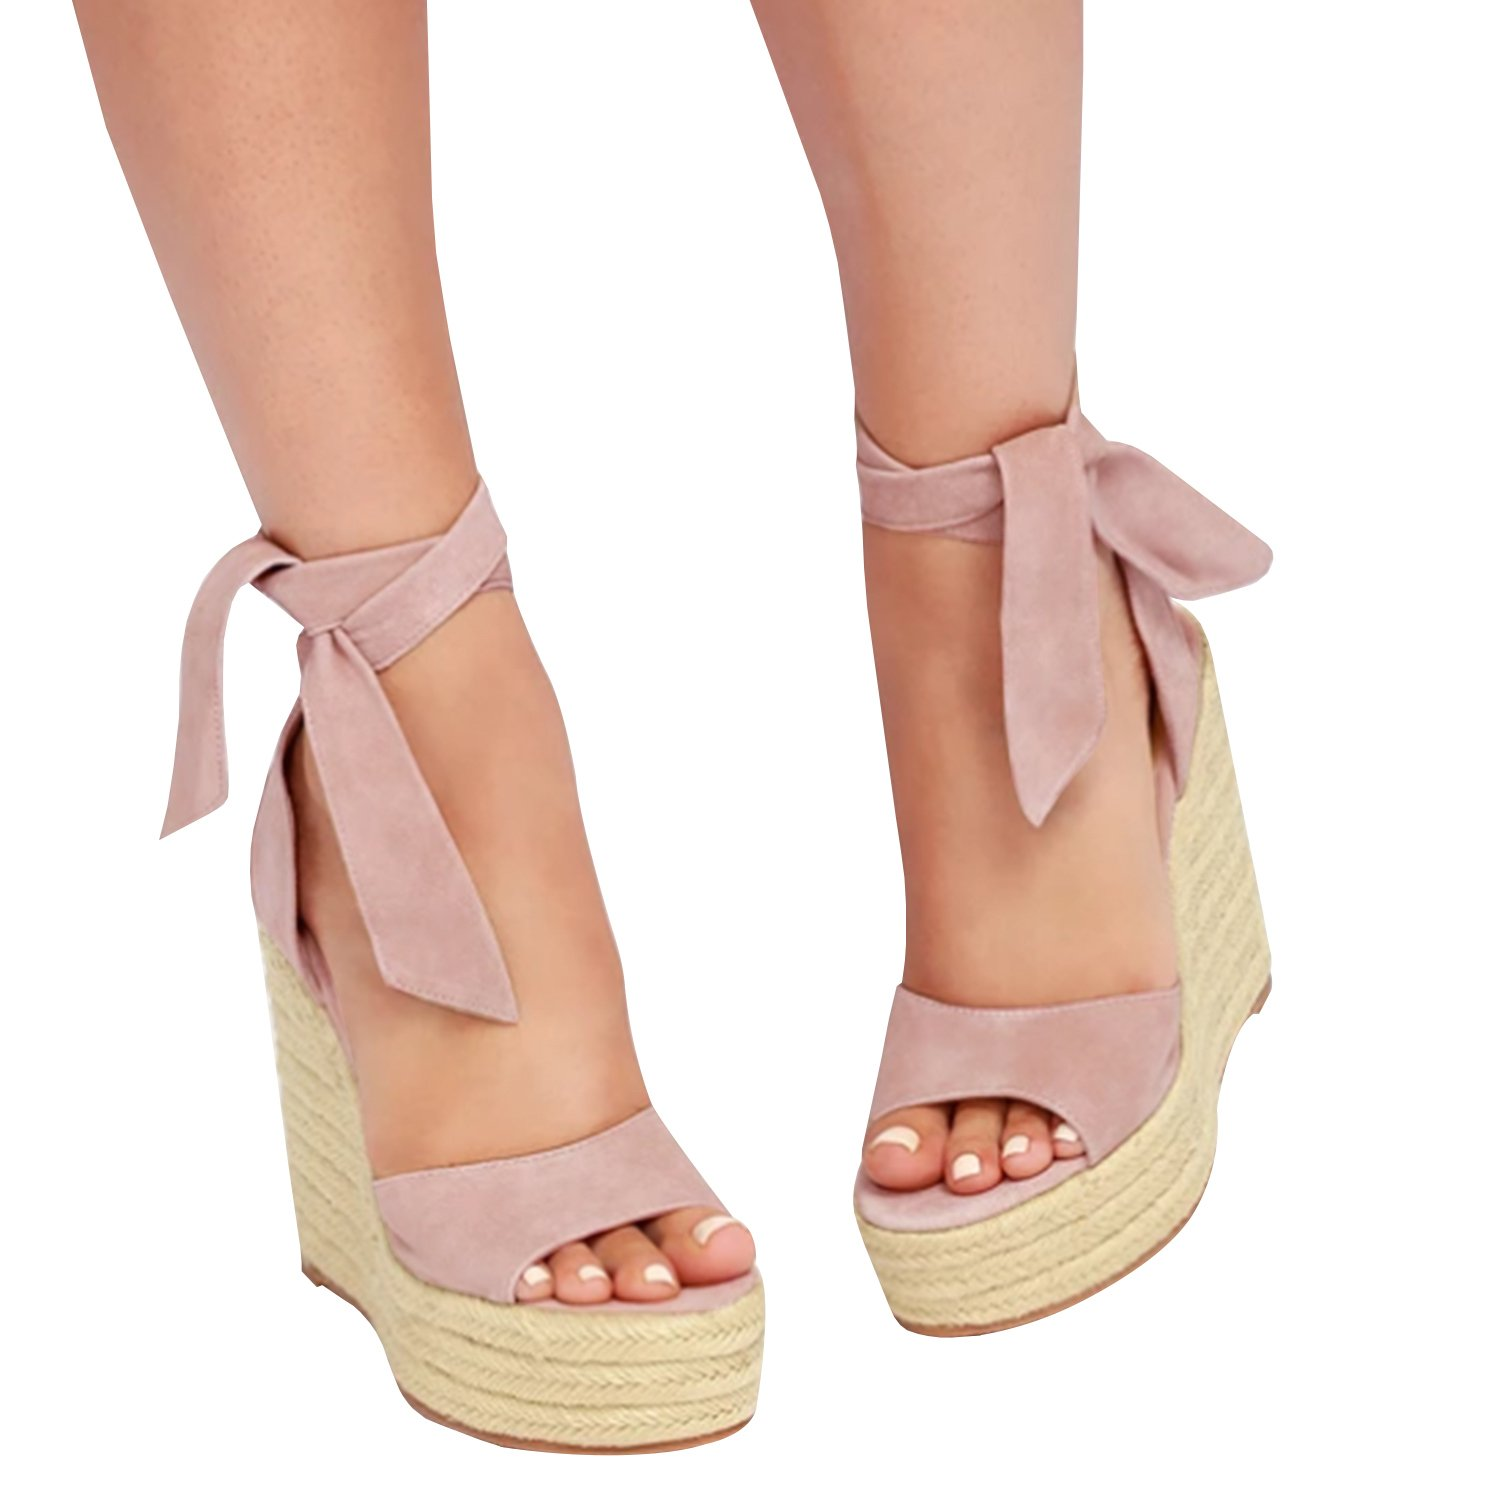 8e8a4c4333 Boho summer pink open toe slingback tie up bandage strappy ankle wrap  buckle high heel platform wedges sandals for women